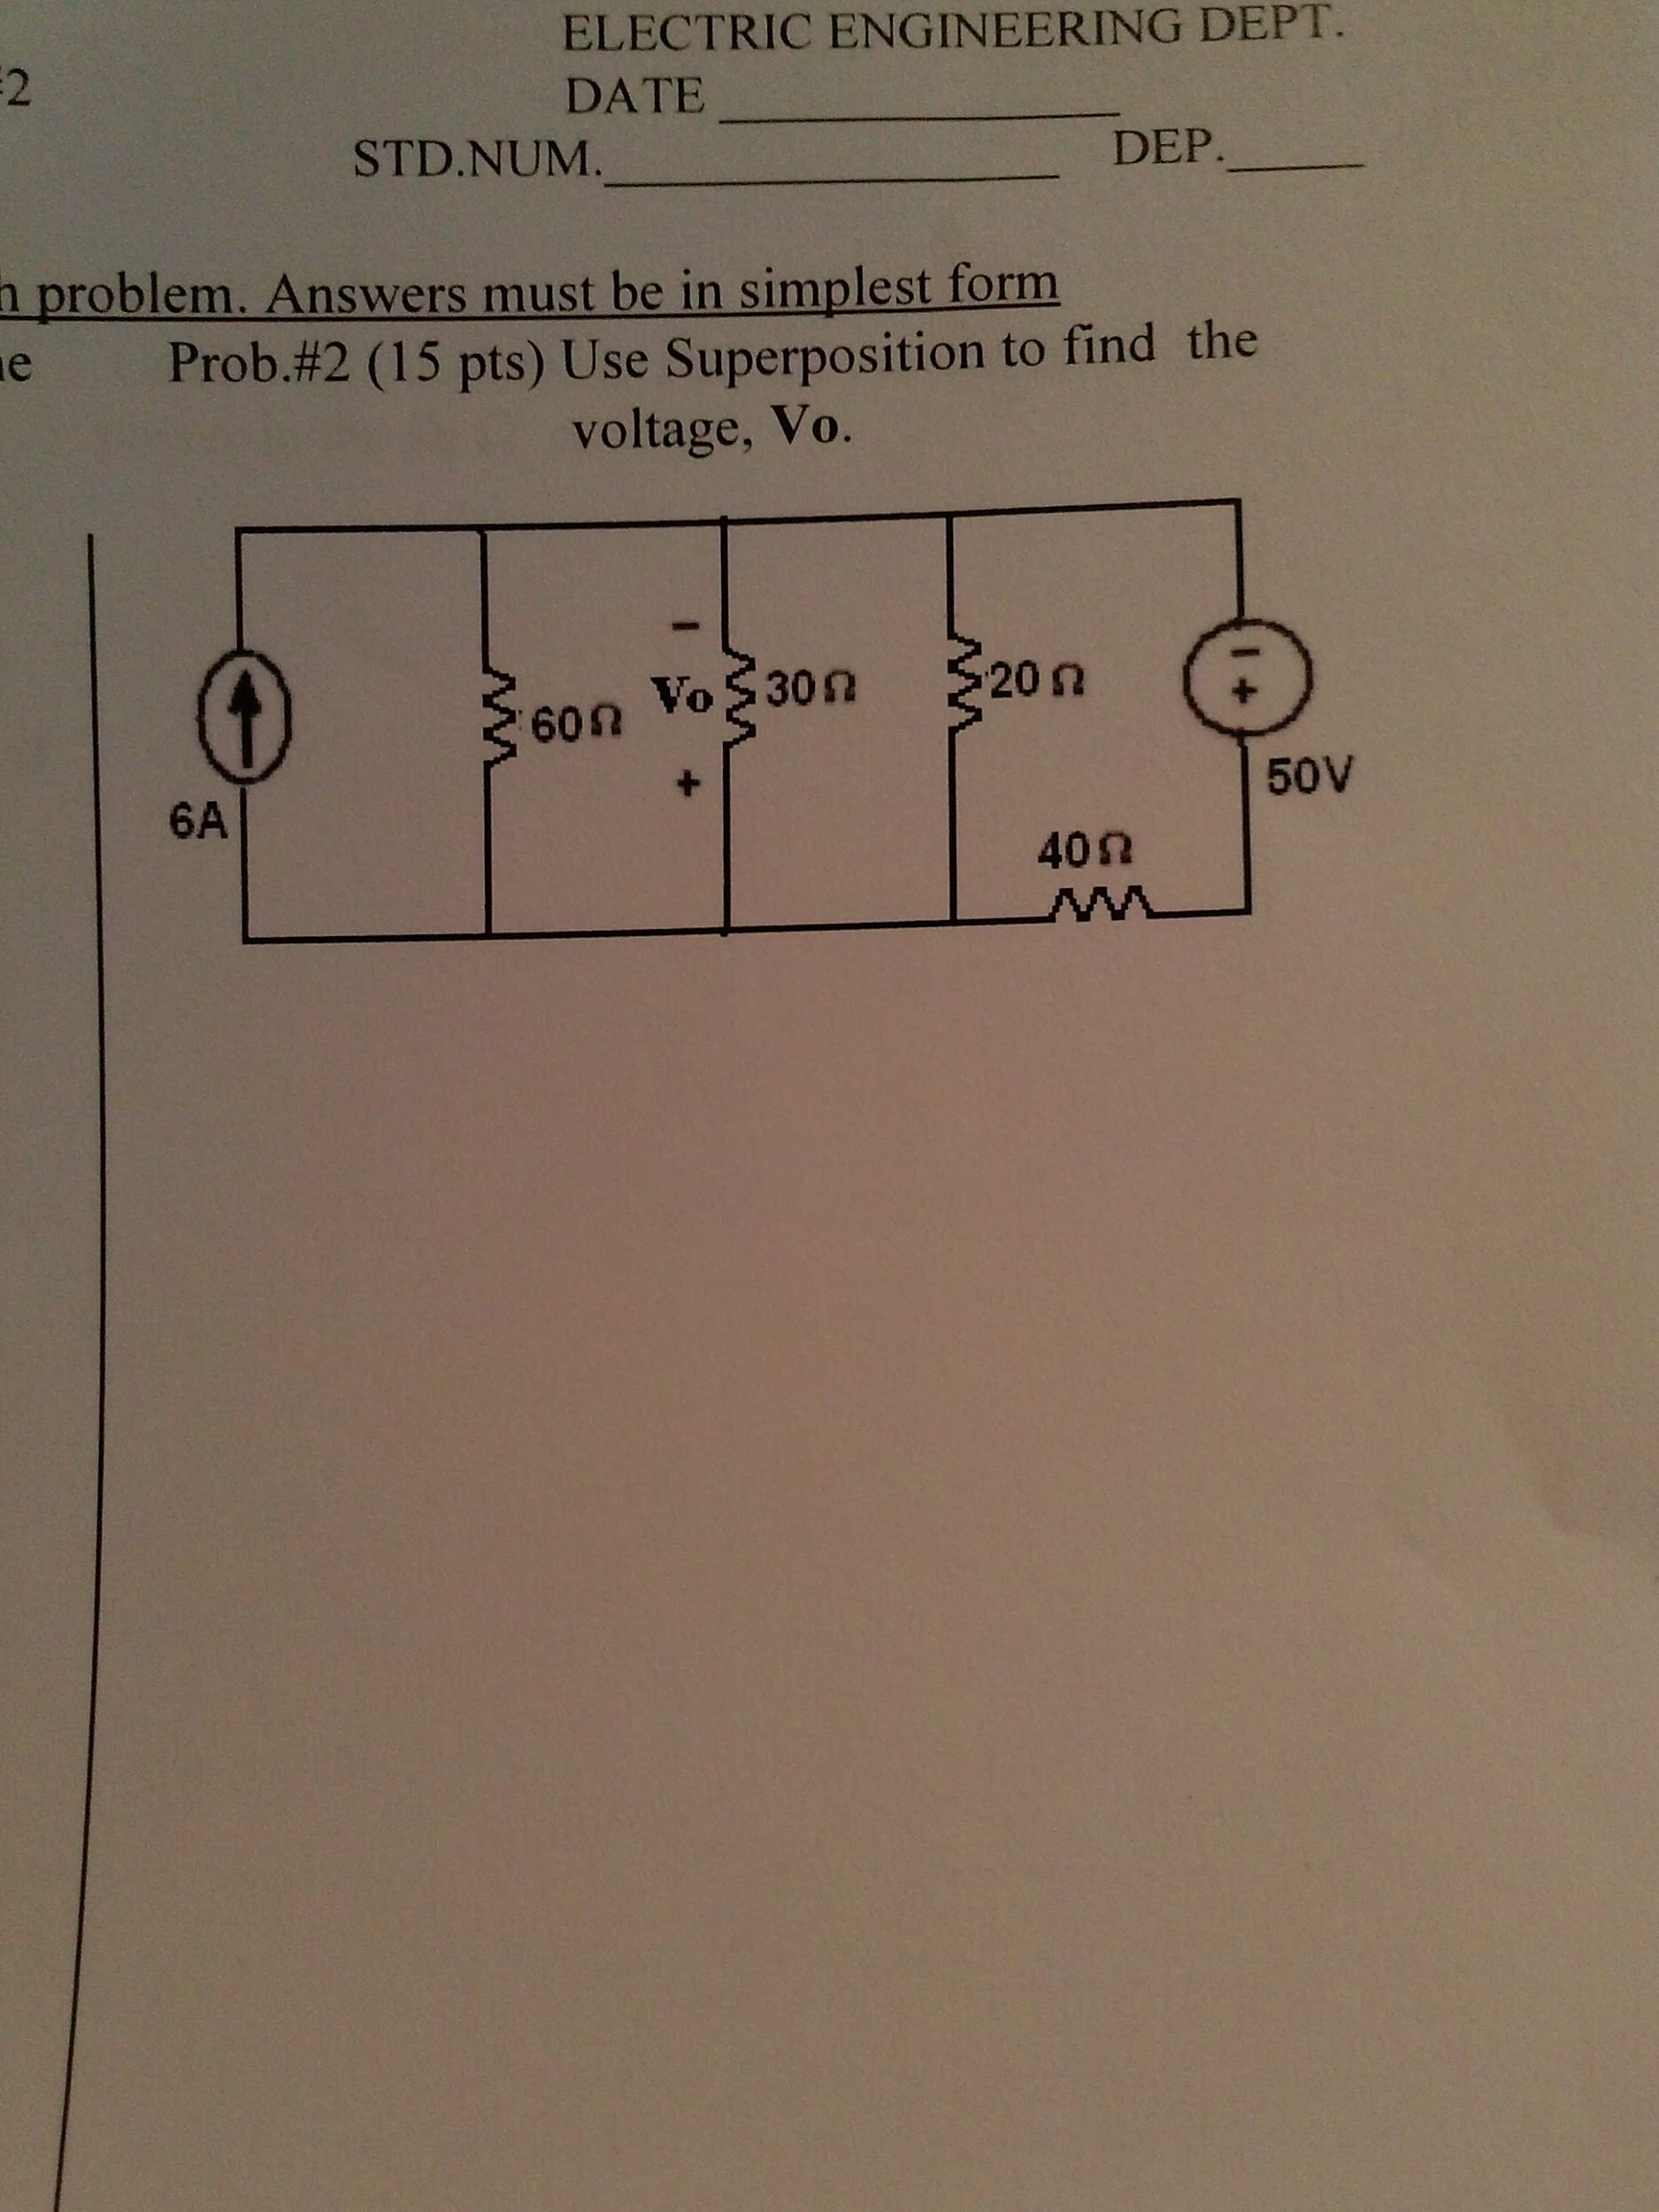 Use superposition to find the voltage, V0.